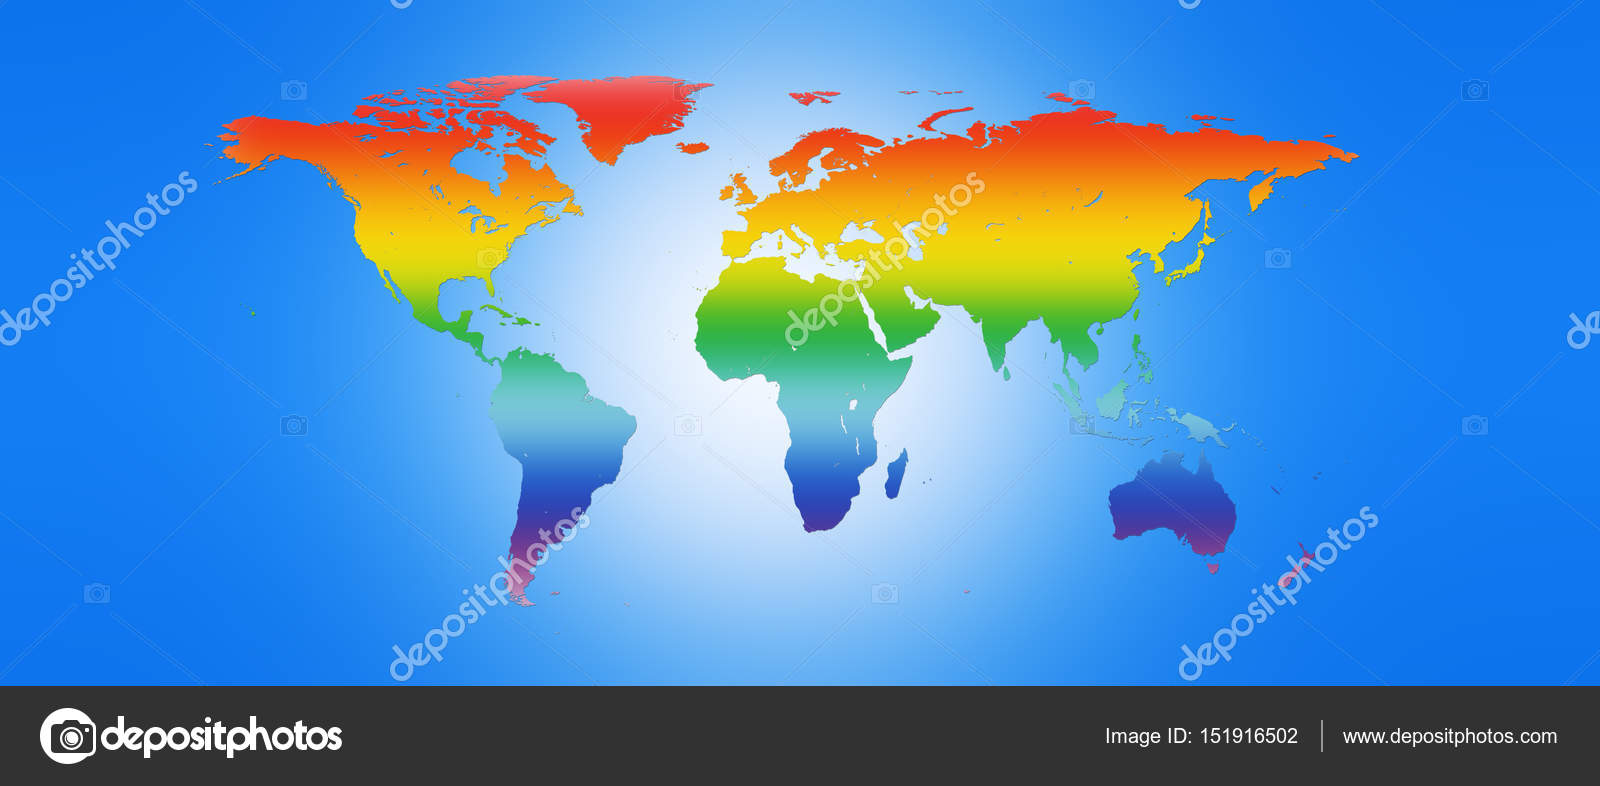 World map in peace colors 3d illustration stock photo world map in peace colors 3d illustration stock photo gumiabroncs Images